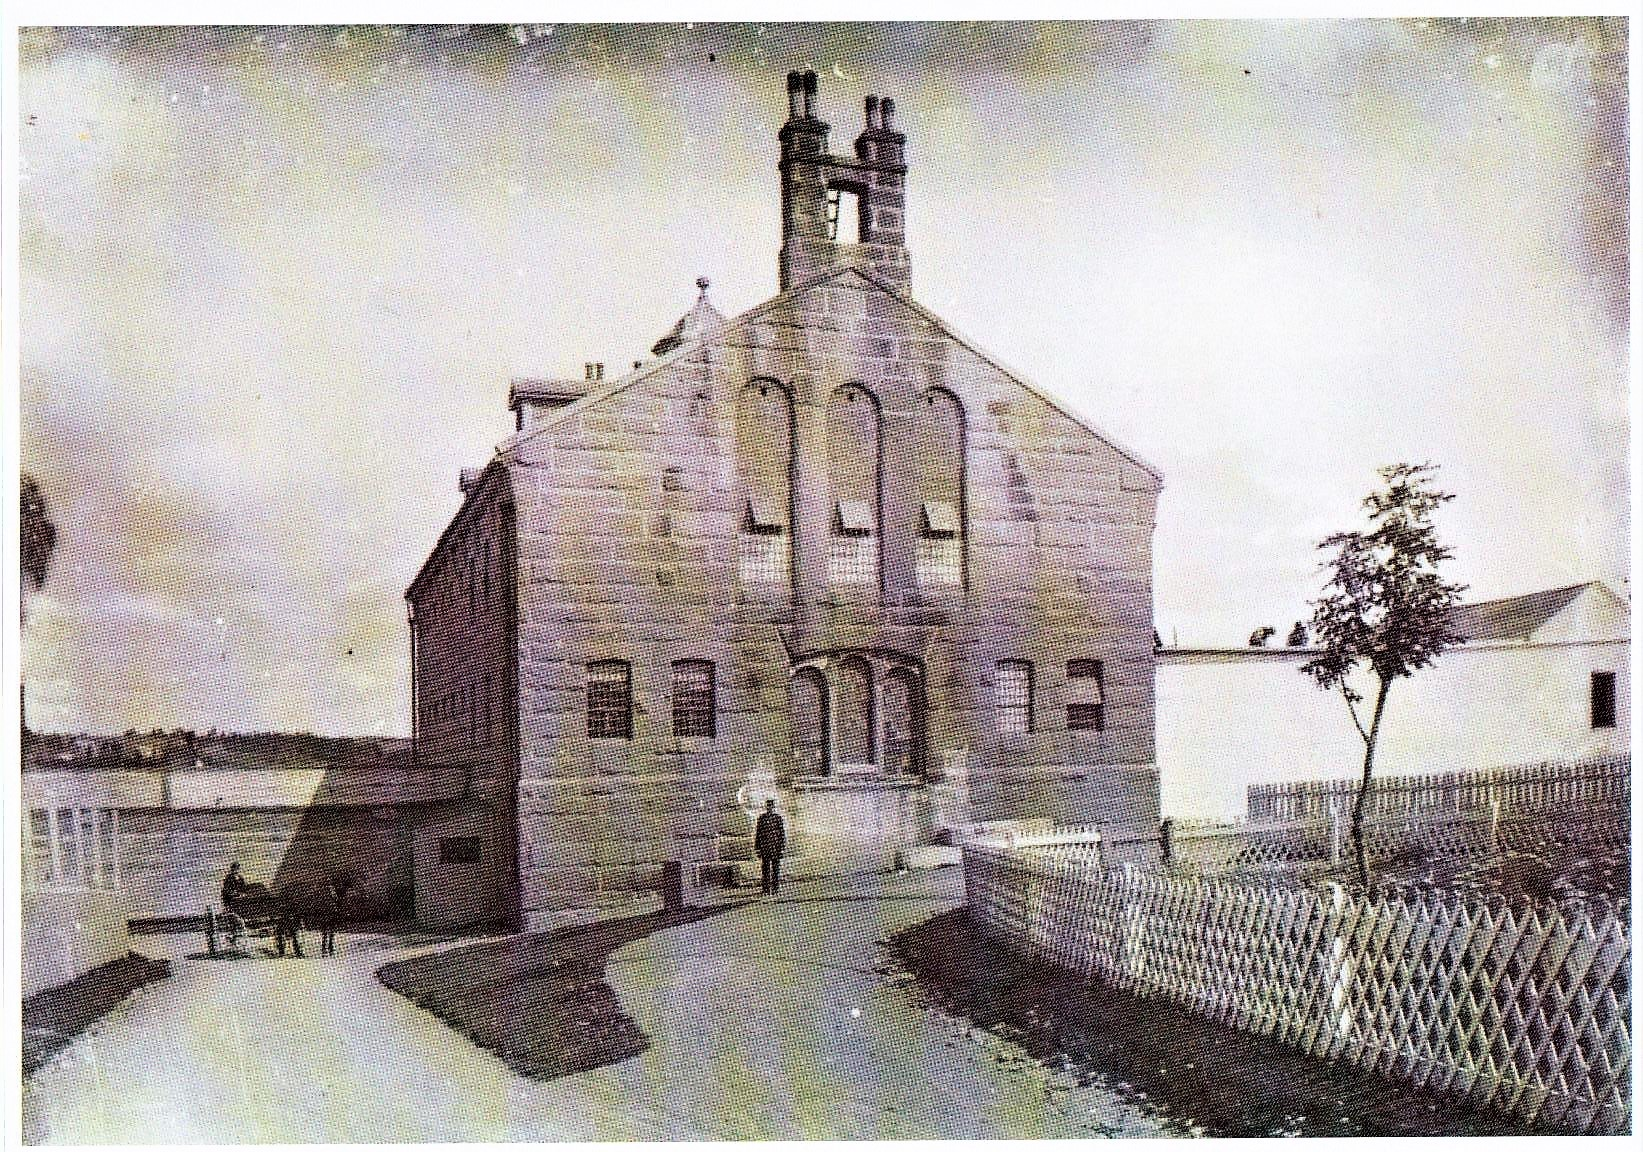 Her Majesty's Penitentiary in the early 1900s. (David Harvey)